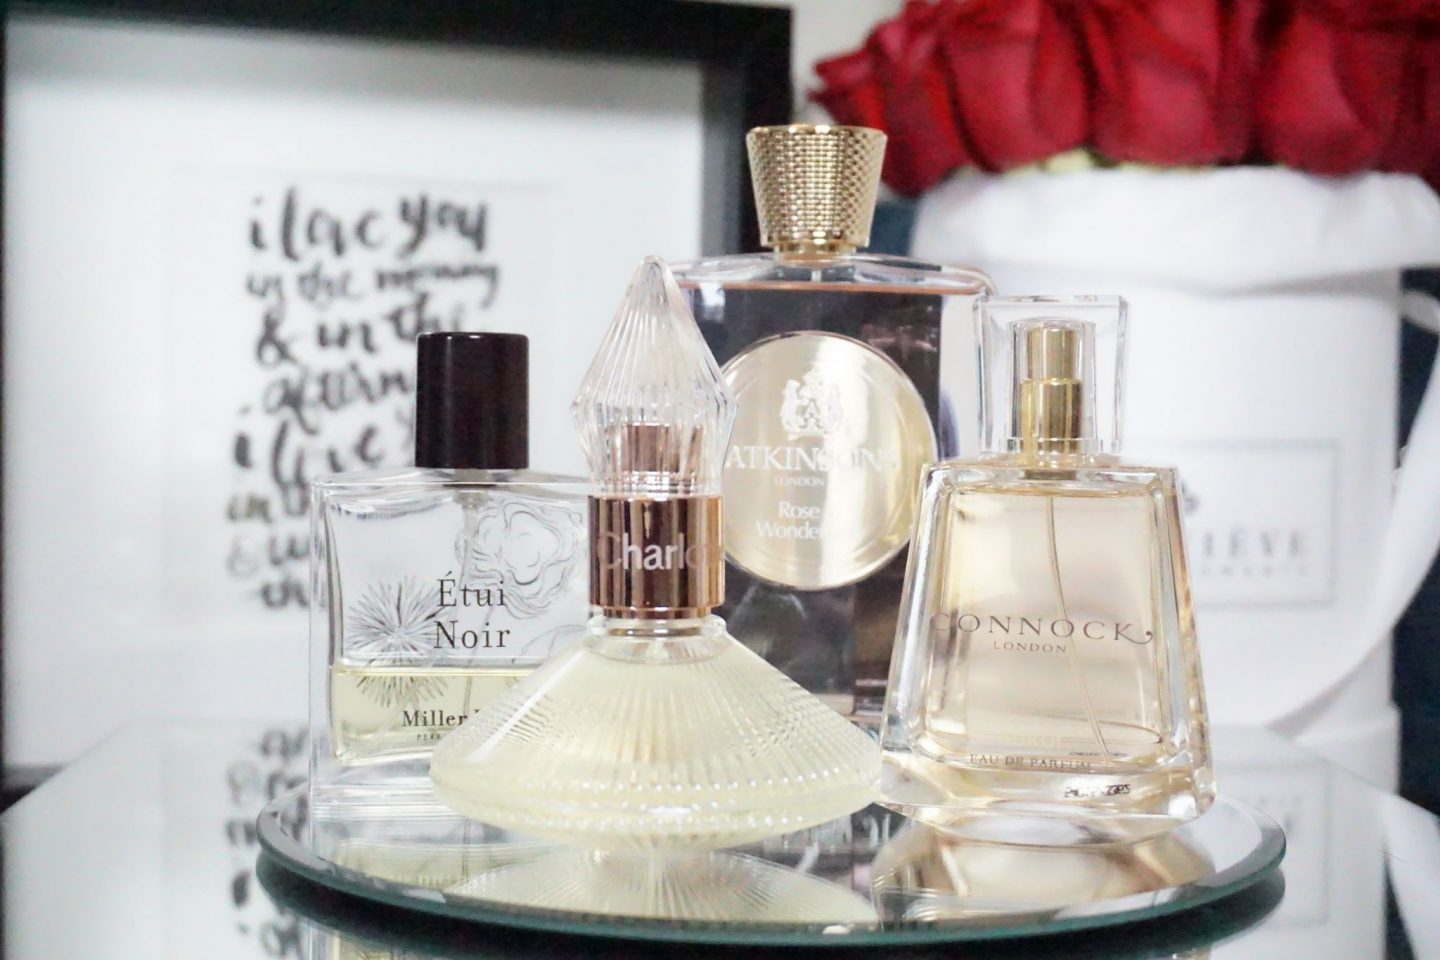 VALENTINE'S FRAGRANCE GIFT GUIDE